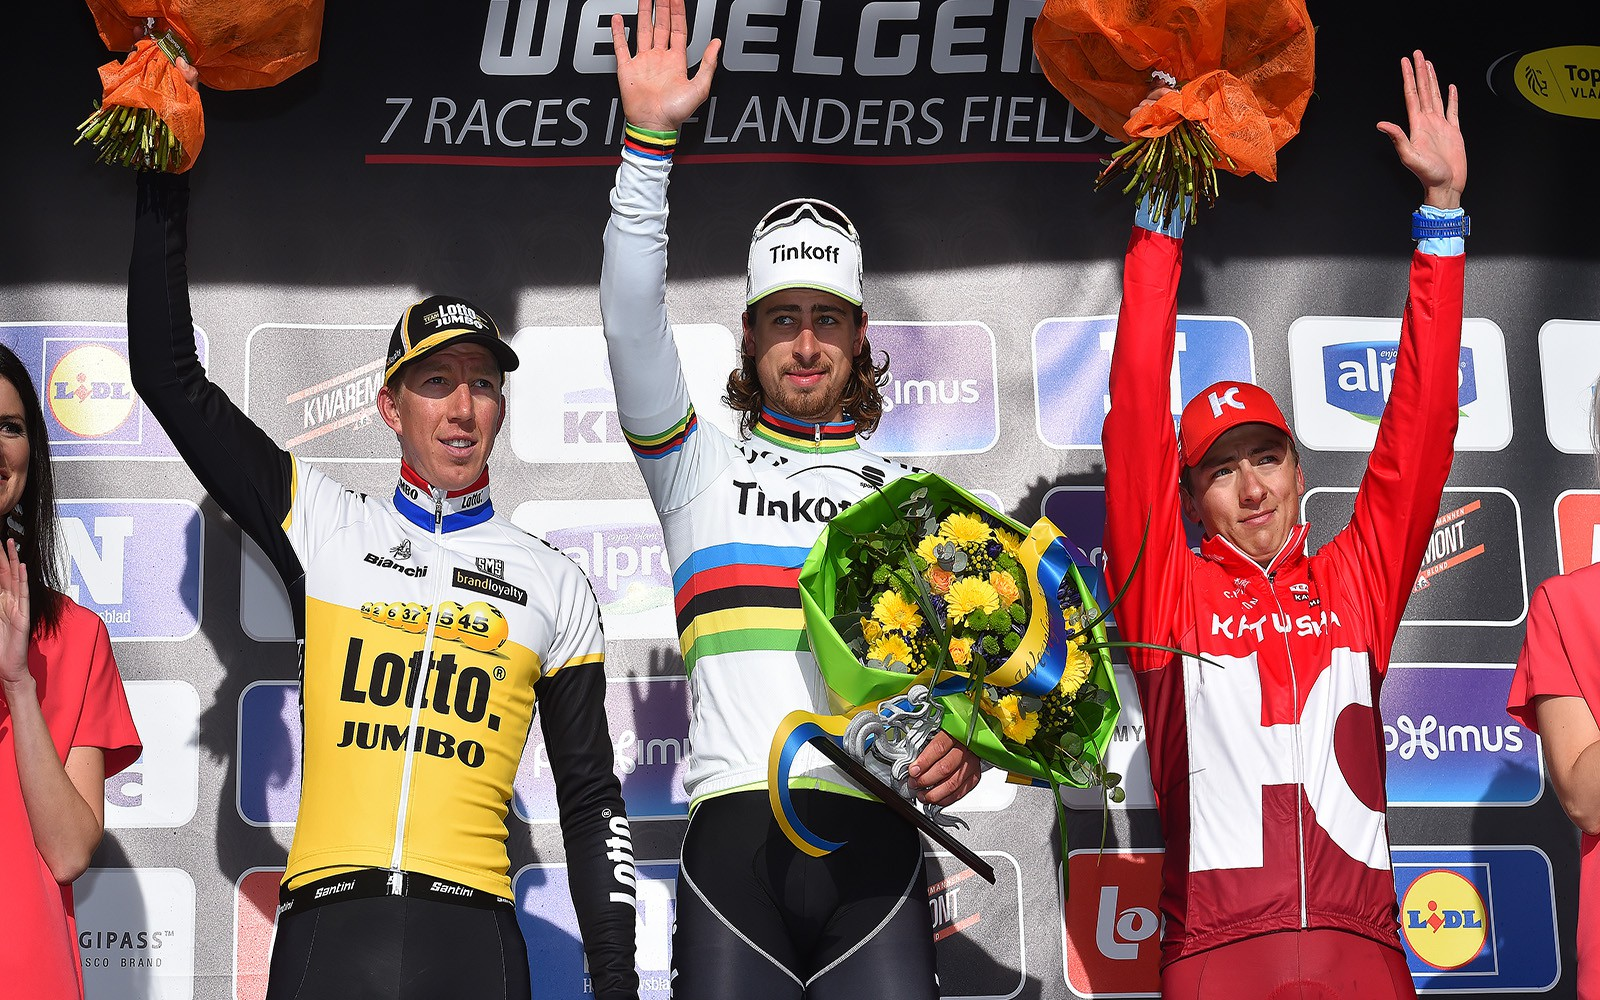 Cycling: 78th Gent - Wevelgem 2016 Podium / VANMARCKE Sep (BEL)/  SAGAN Peter (SVK)Celebration Joie Vreugde / KUZNETSOV Viacheslav (RUS)/ Gent (Deinze) - Wevelgem (242.8Km)/  Ghent Gand Flanders Classics /(c) Tim De Waele